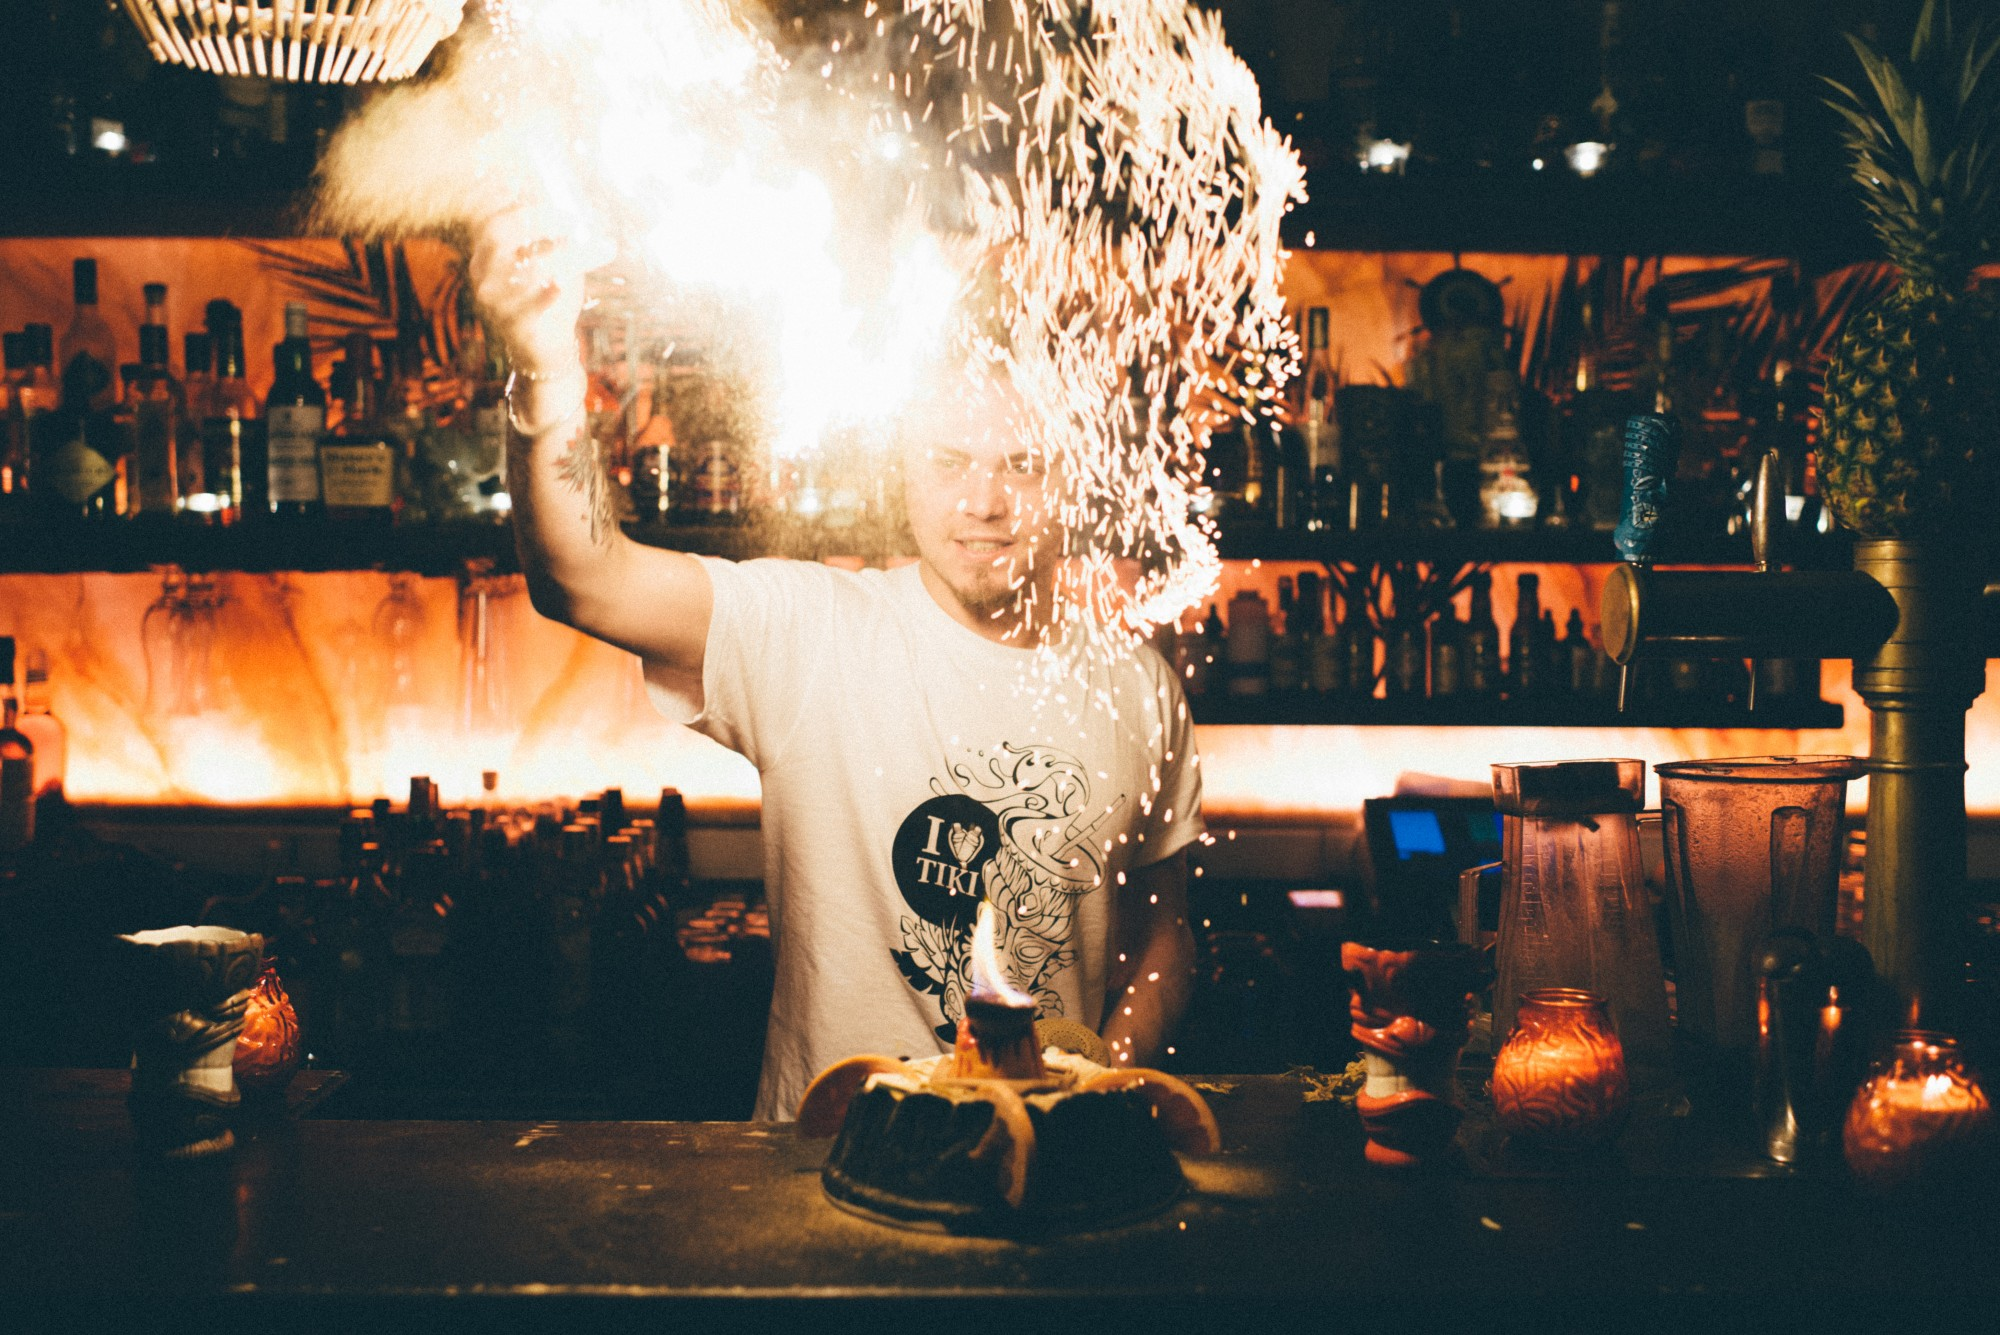 HiP Paris blog. The 3 most outrageous cocktails in Paris. Sparks fly even behind the bar at Dirty Dick. Photo by Jean-Marie Heidinger.